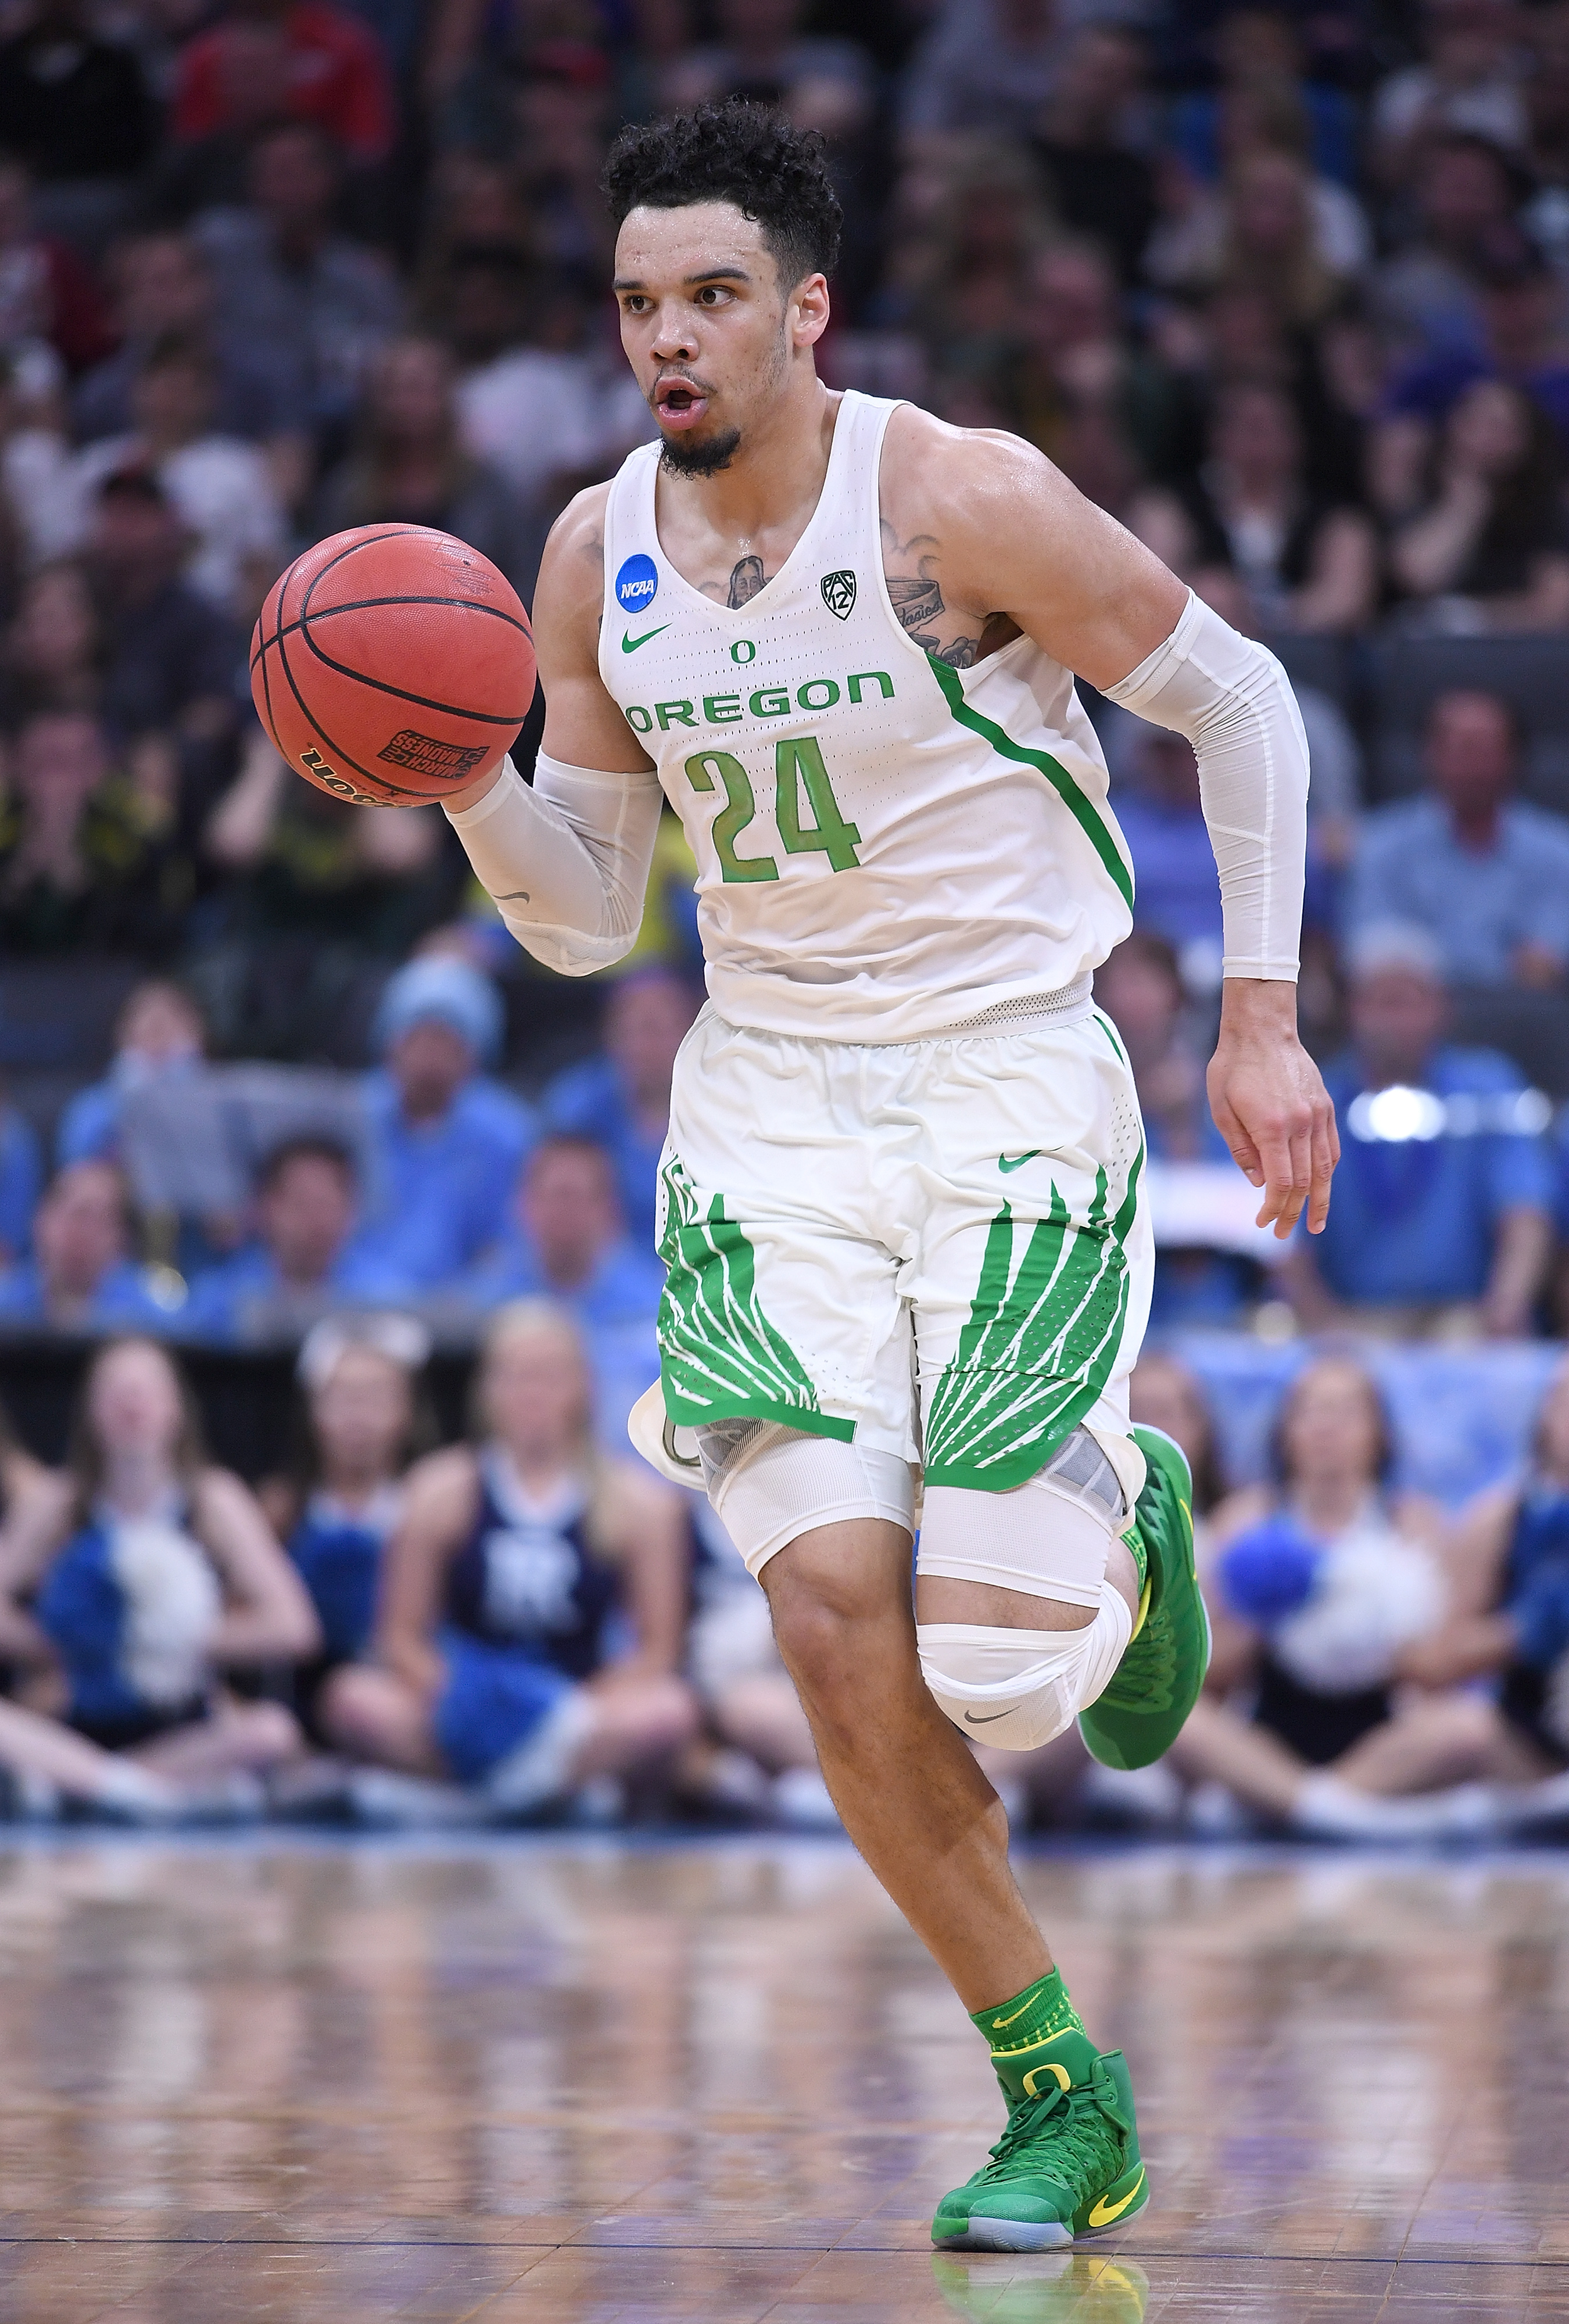 Dillon Brooks Named 2017 NABC All-American - Addicted To Quack